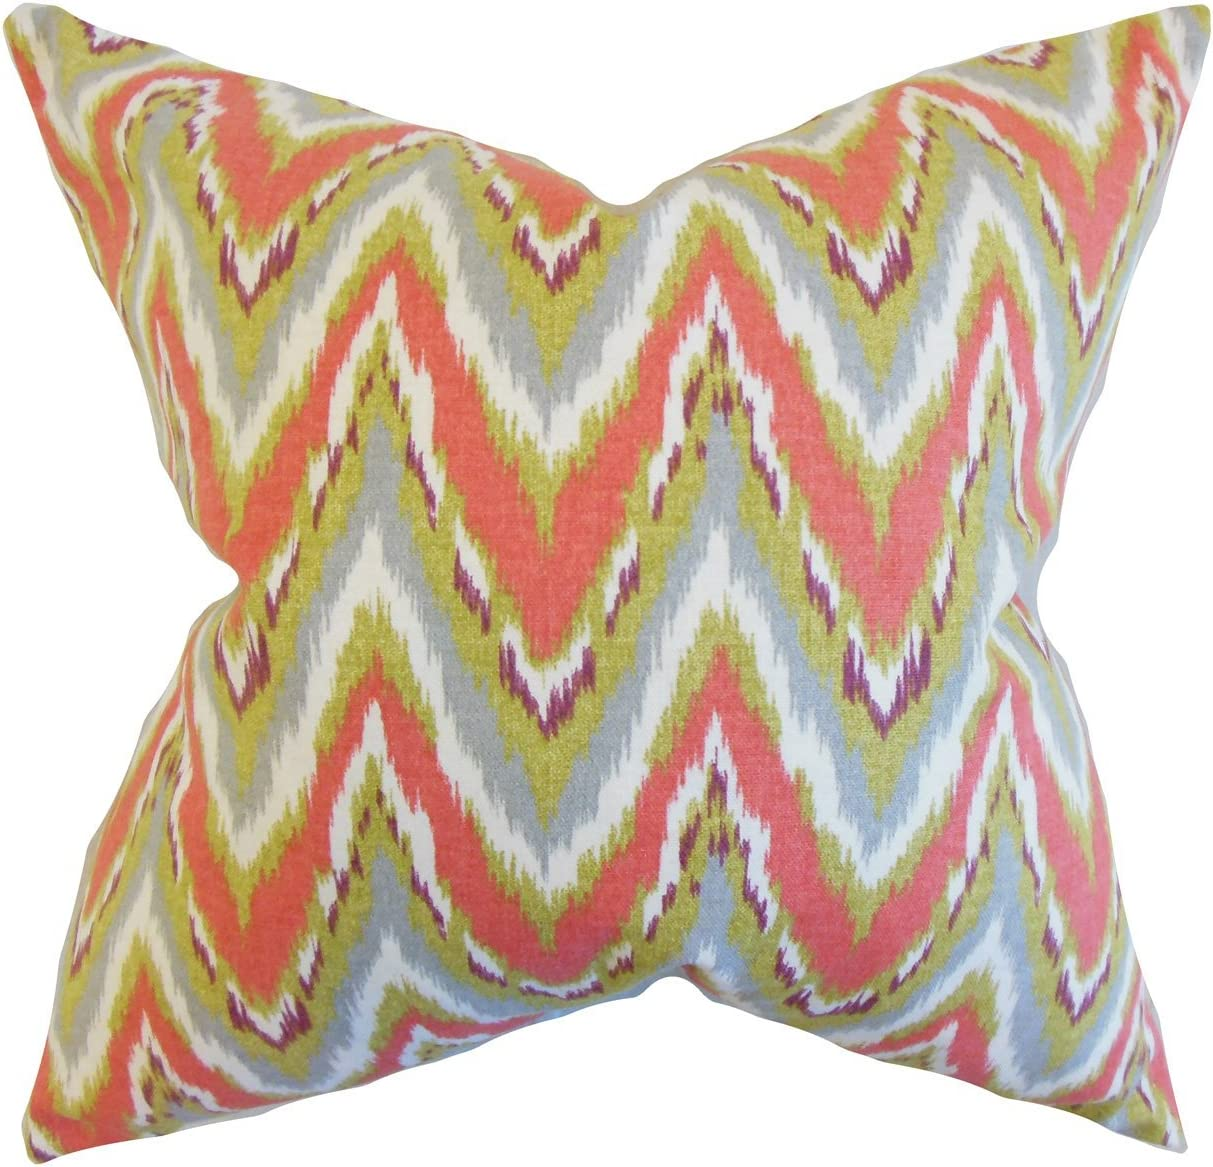 Amazon Com The Pillow Collection Matisse Zigzag Bedding Sham Coral Euro 26 X 26 Home Kitchen